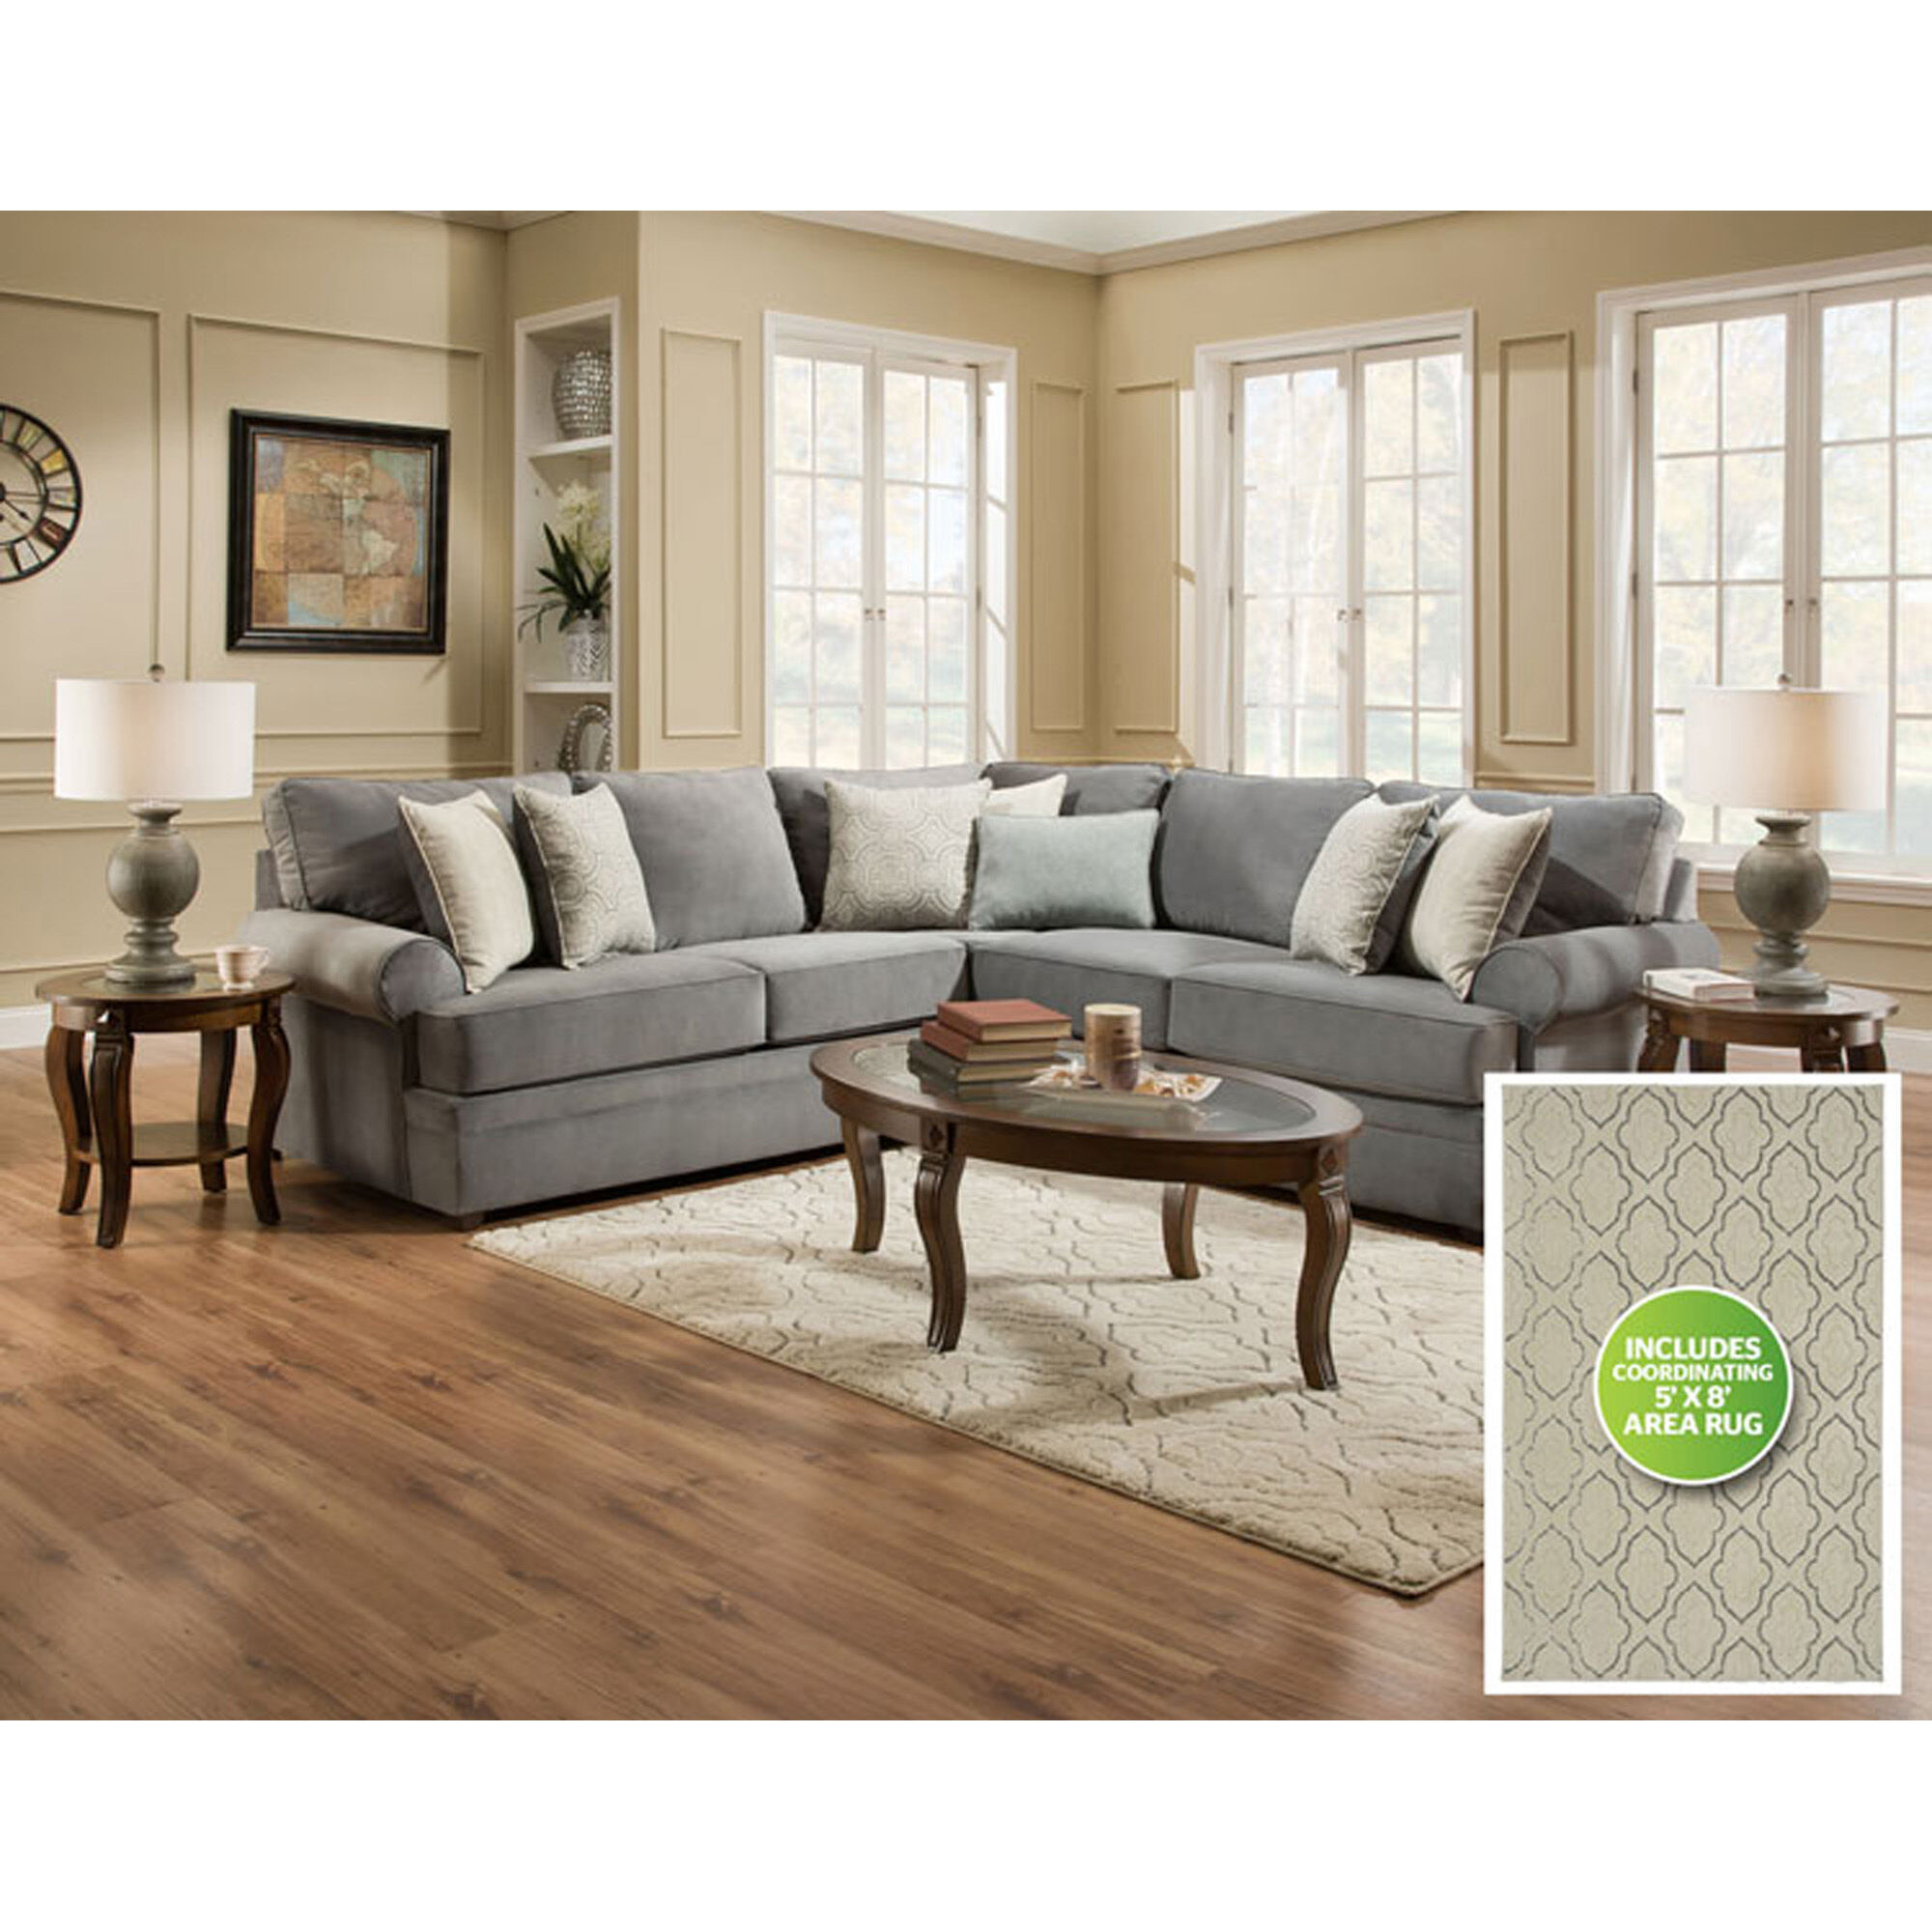 Lovely 8 Piece Naeva Living Room Collection